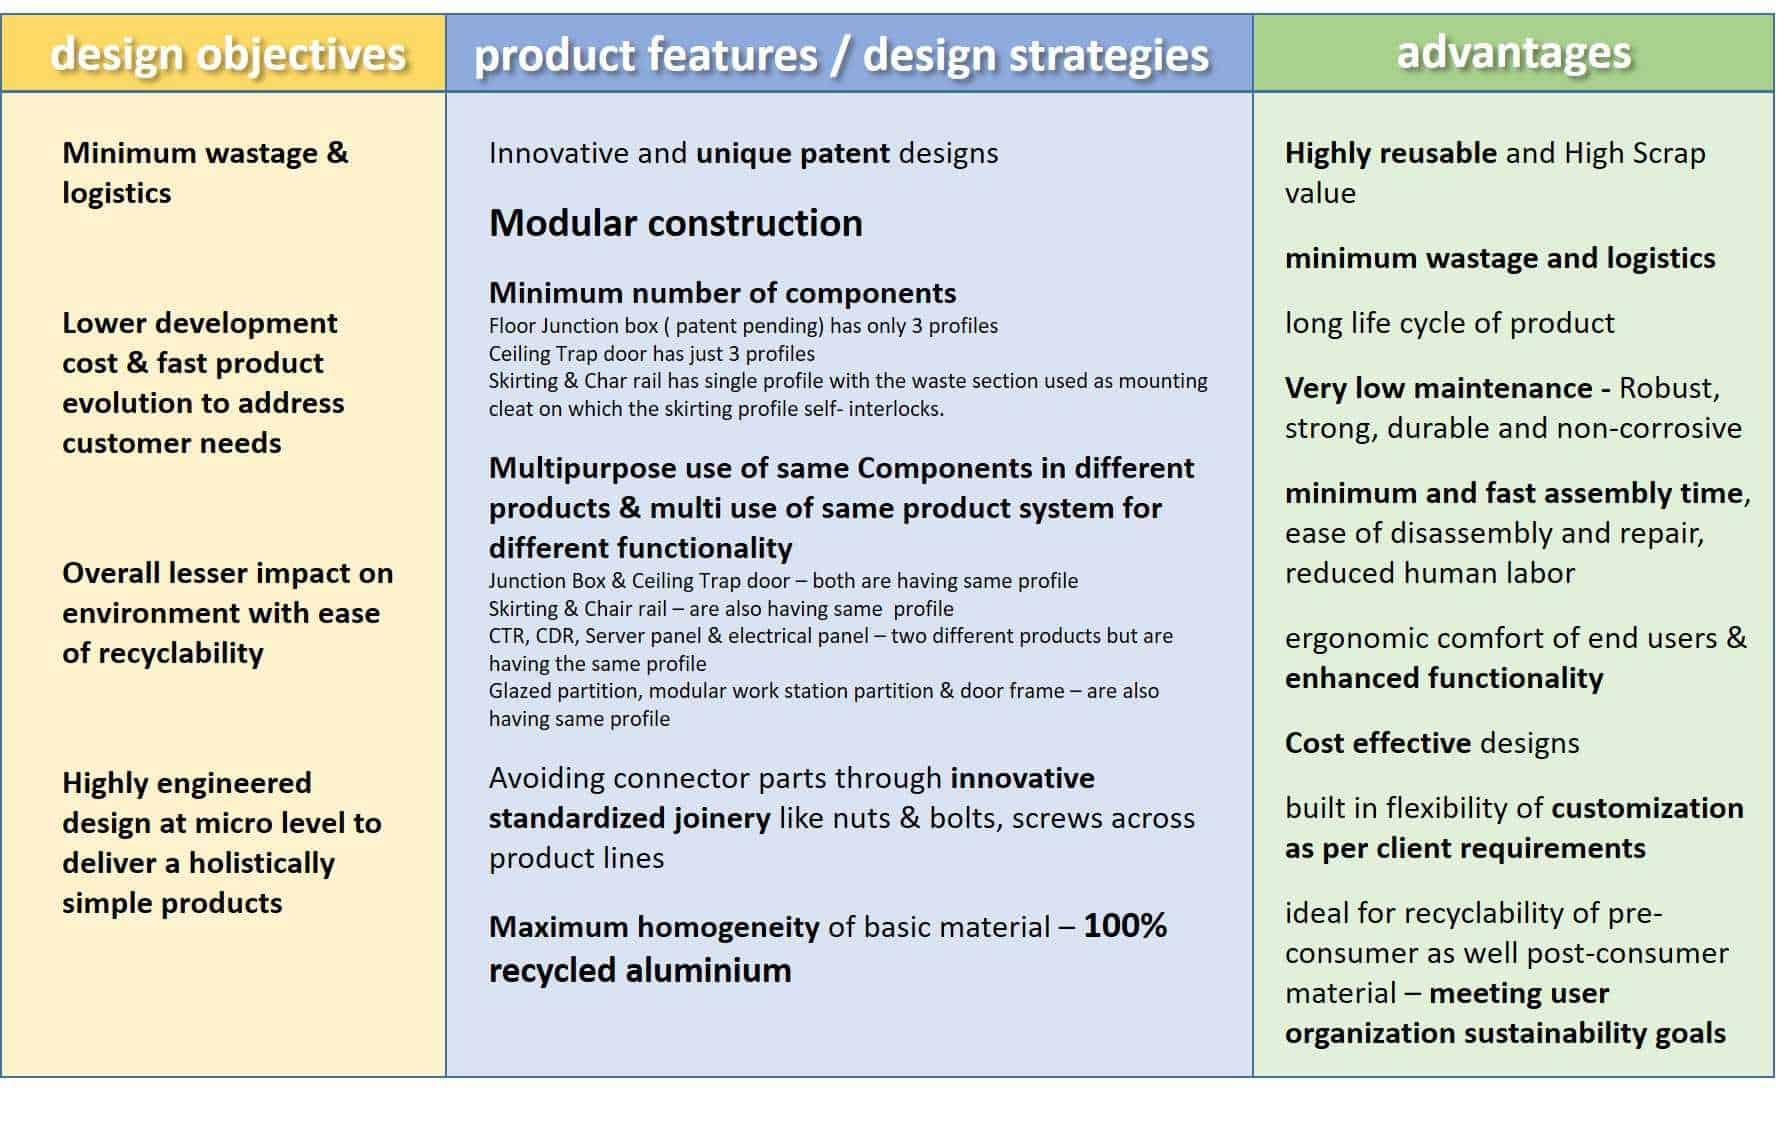 key design strategies and product advantages of iqubx